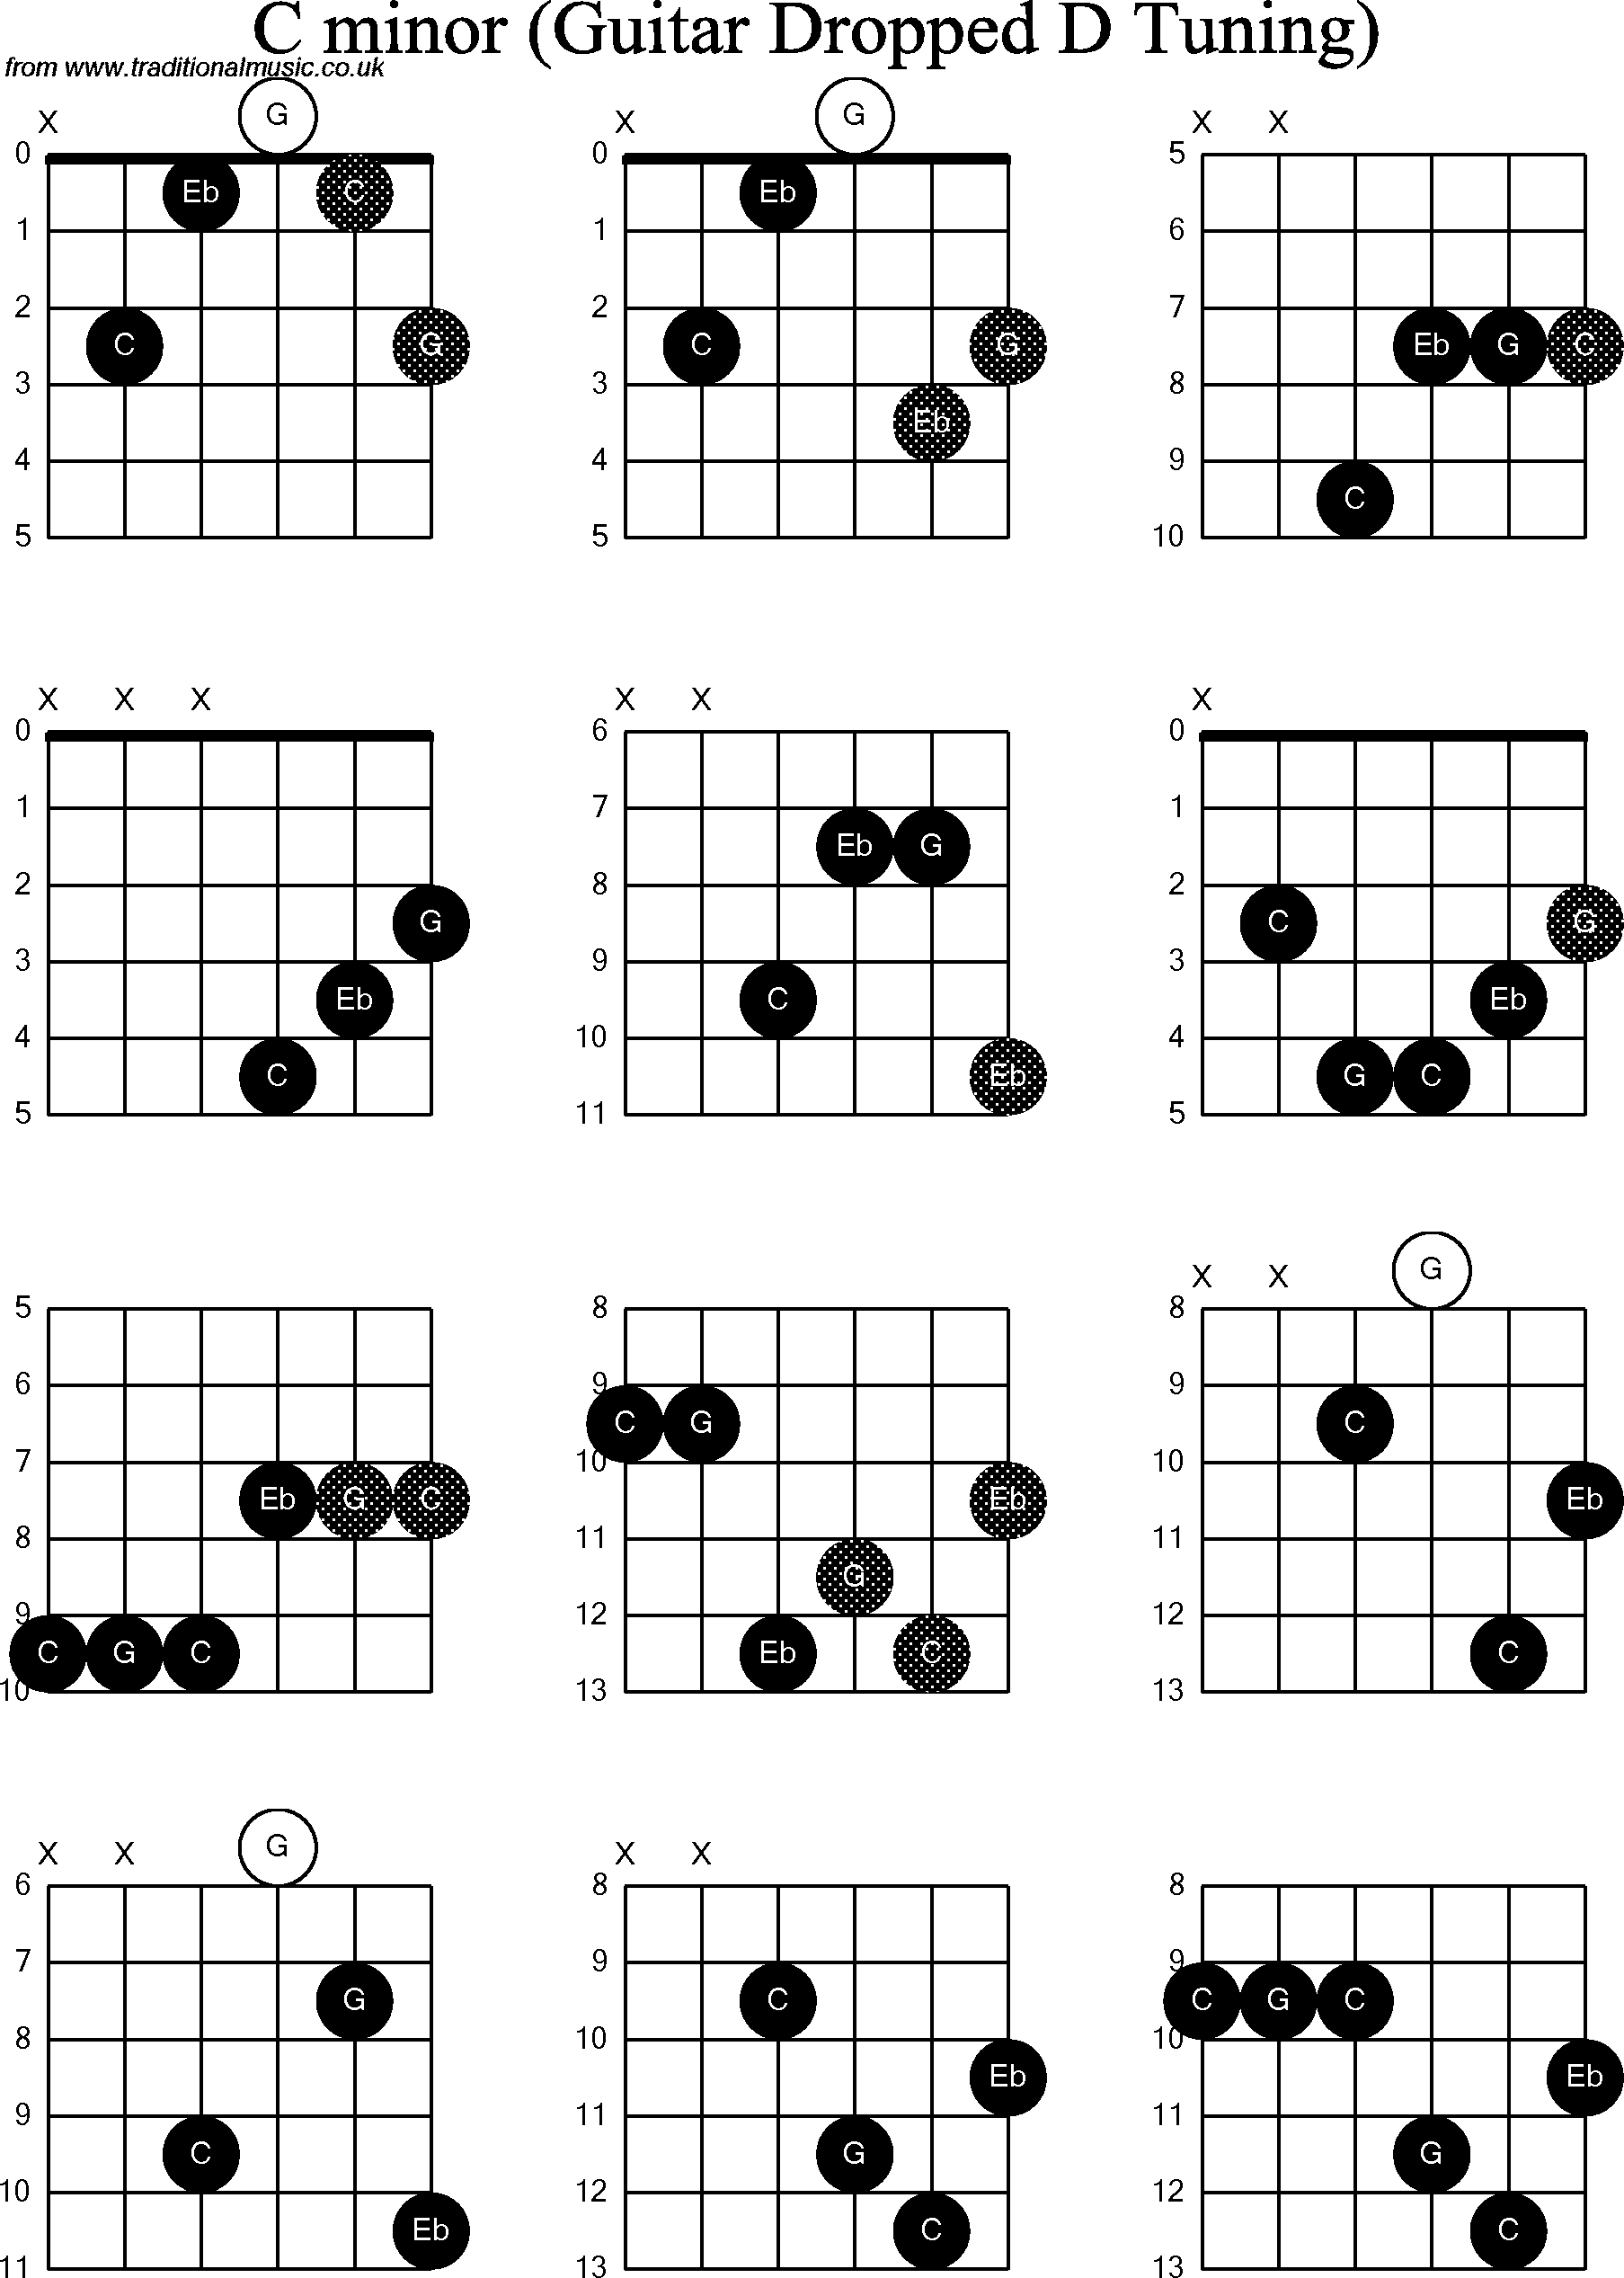 Chord Diagrams For Dropped D Guitardadgbe C Minor